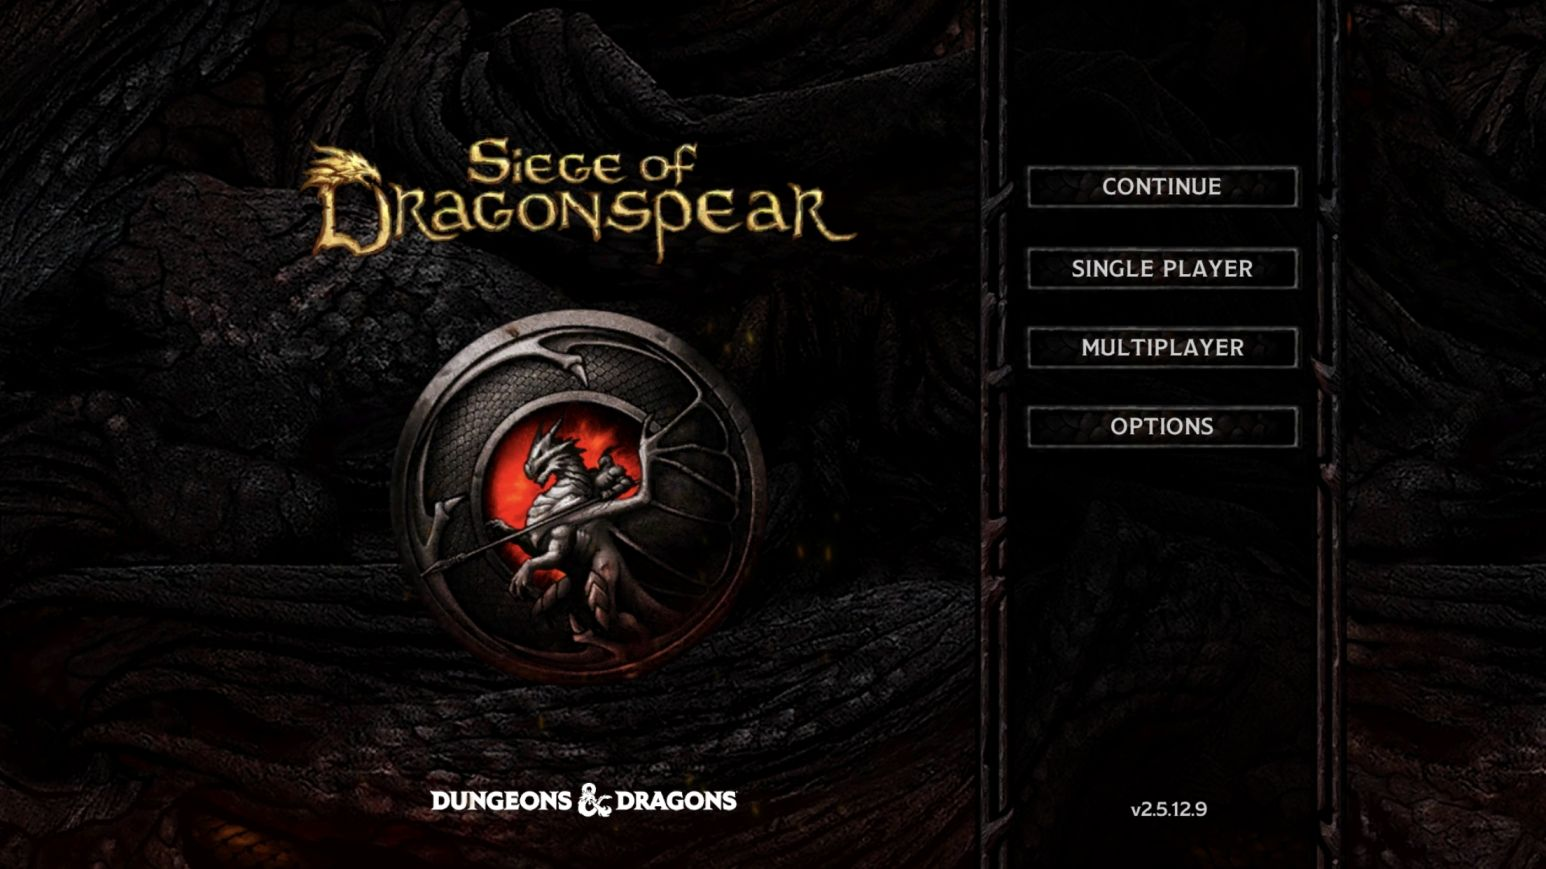 Siege of Dragonspear (copie d'écran 1 sur Android)